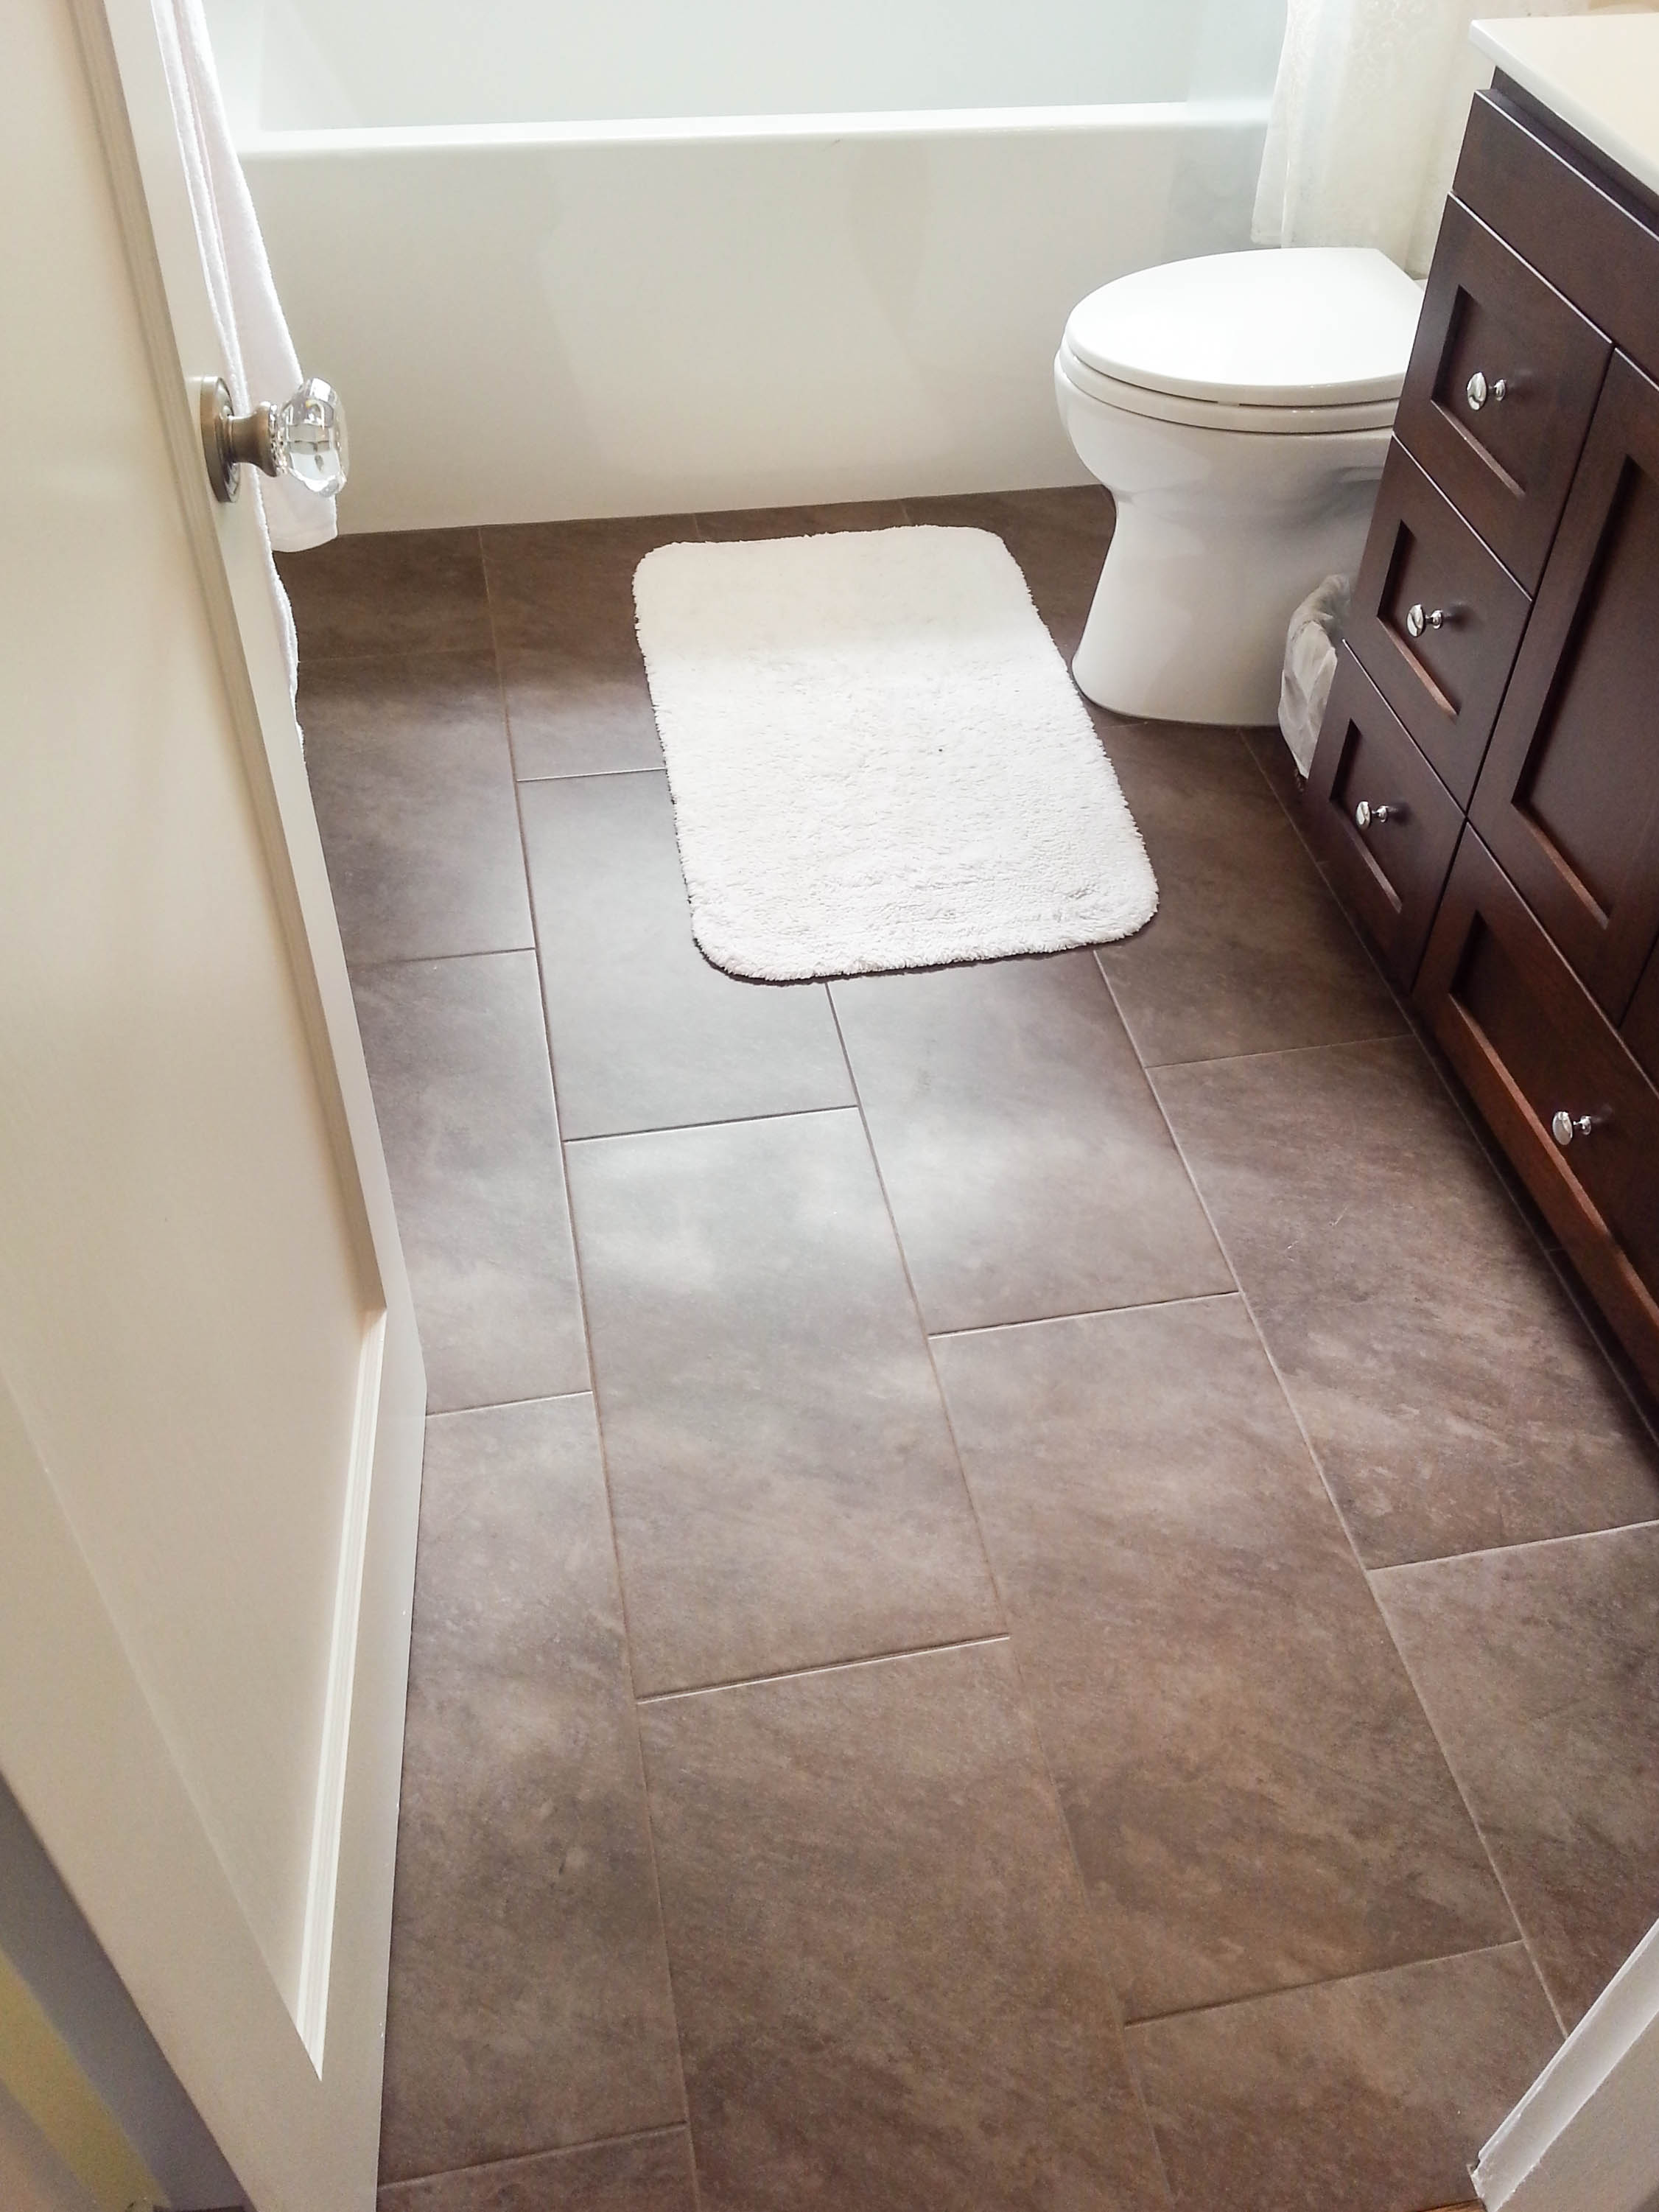 Bathroom Floors Seattle Tile Contractor Irc Tile Services